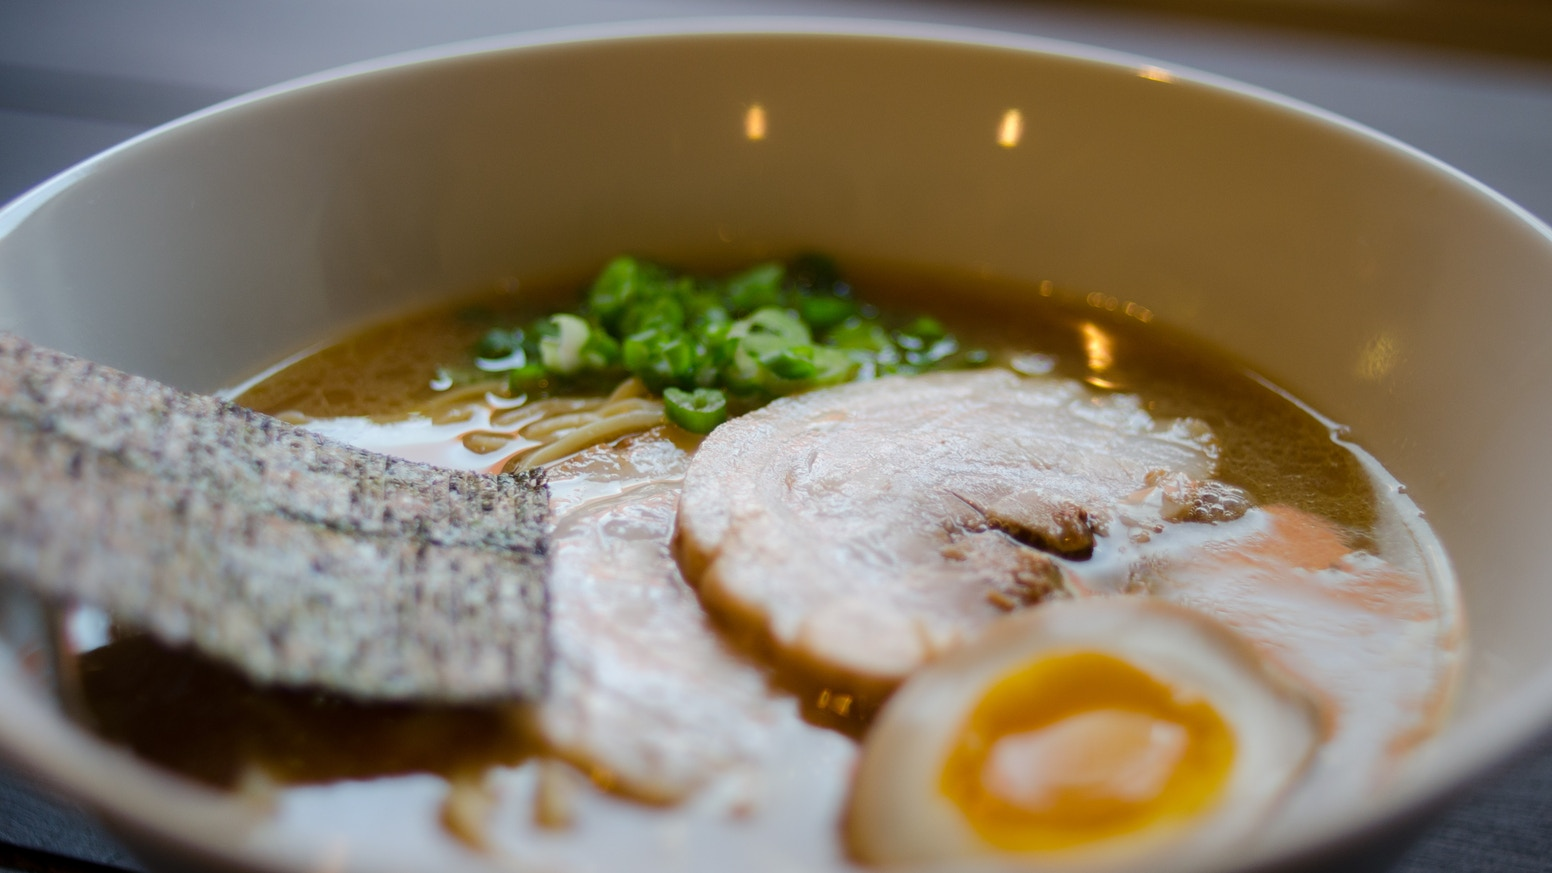 Want authentic ramen but don't have time to visit Japan? Then become a ramen chef yourself with our Ramen Hero meal kit!